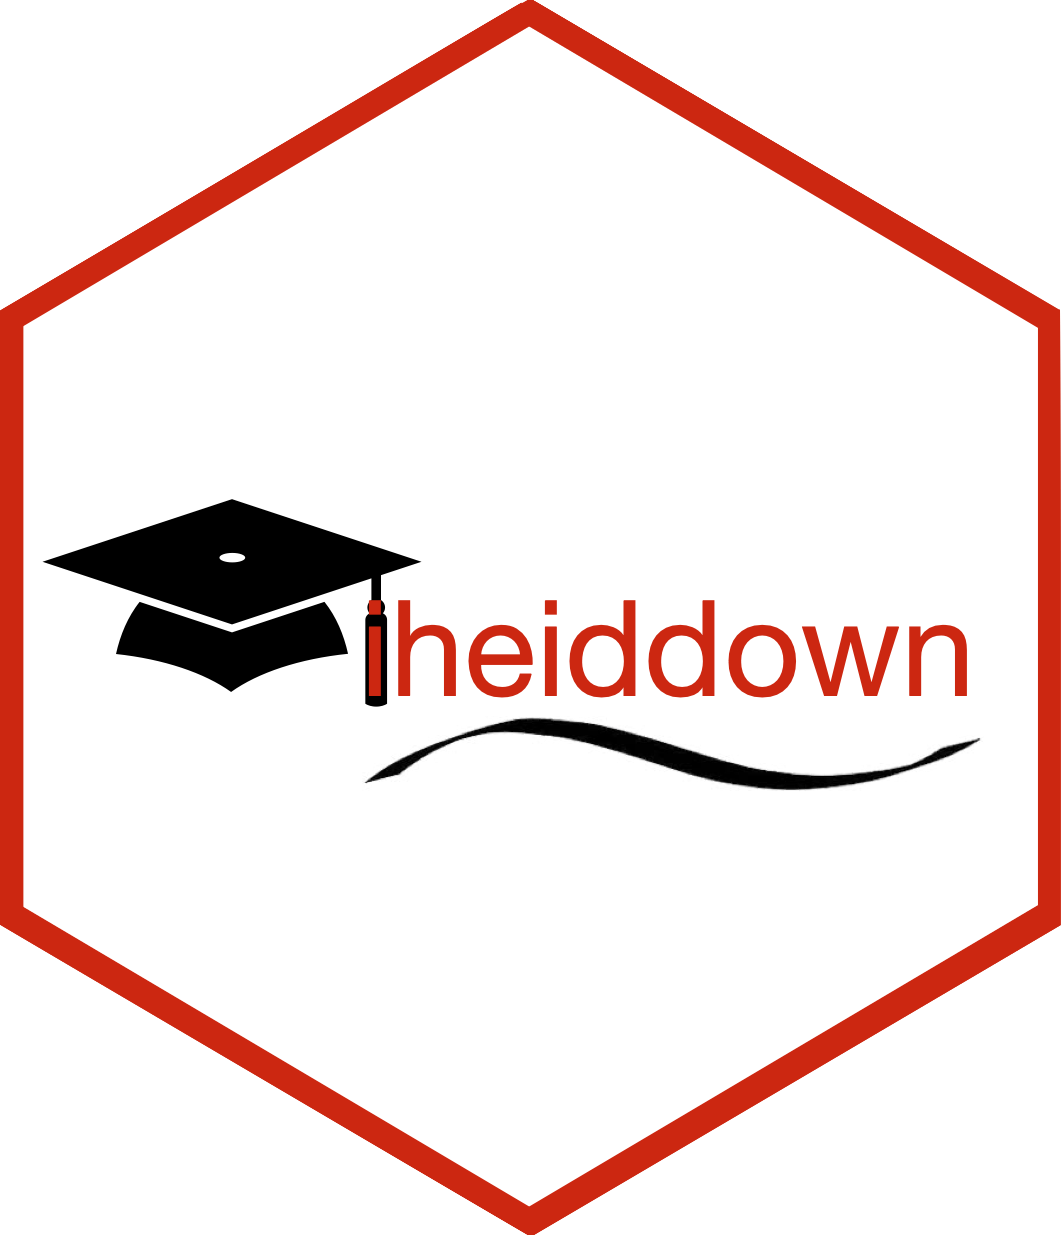 iheiddown hex sticker